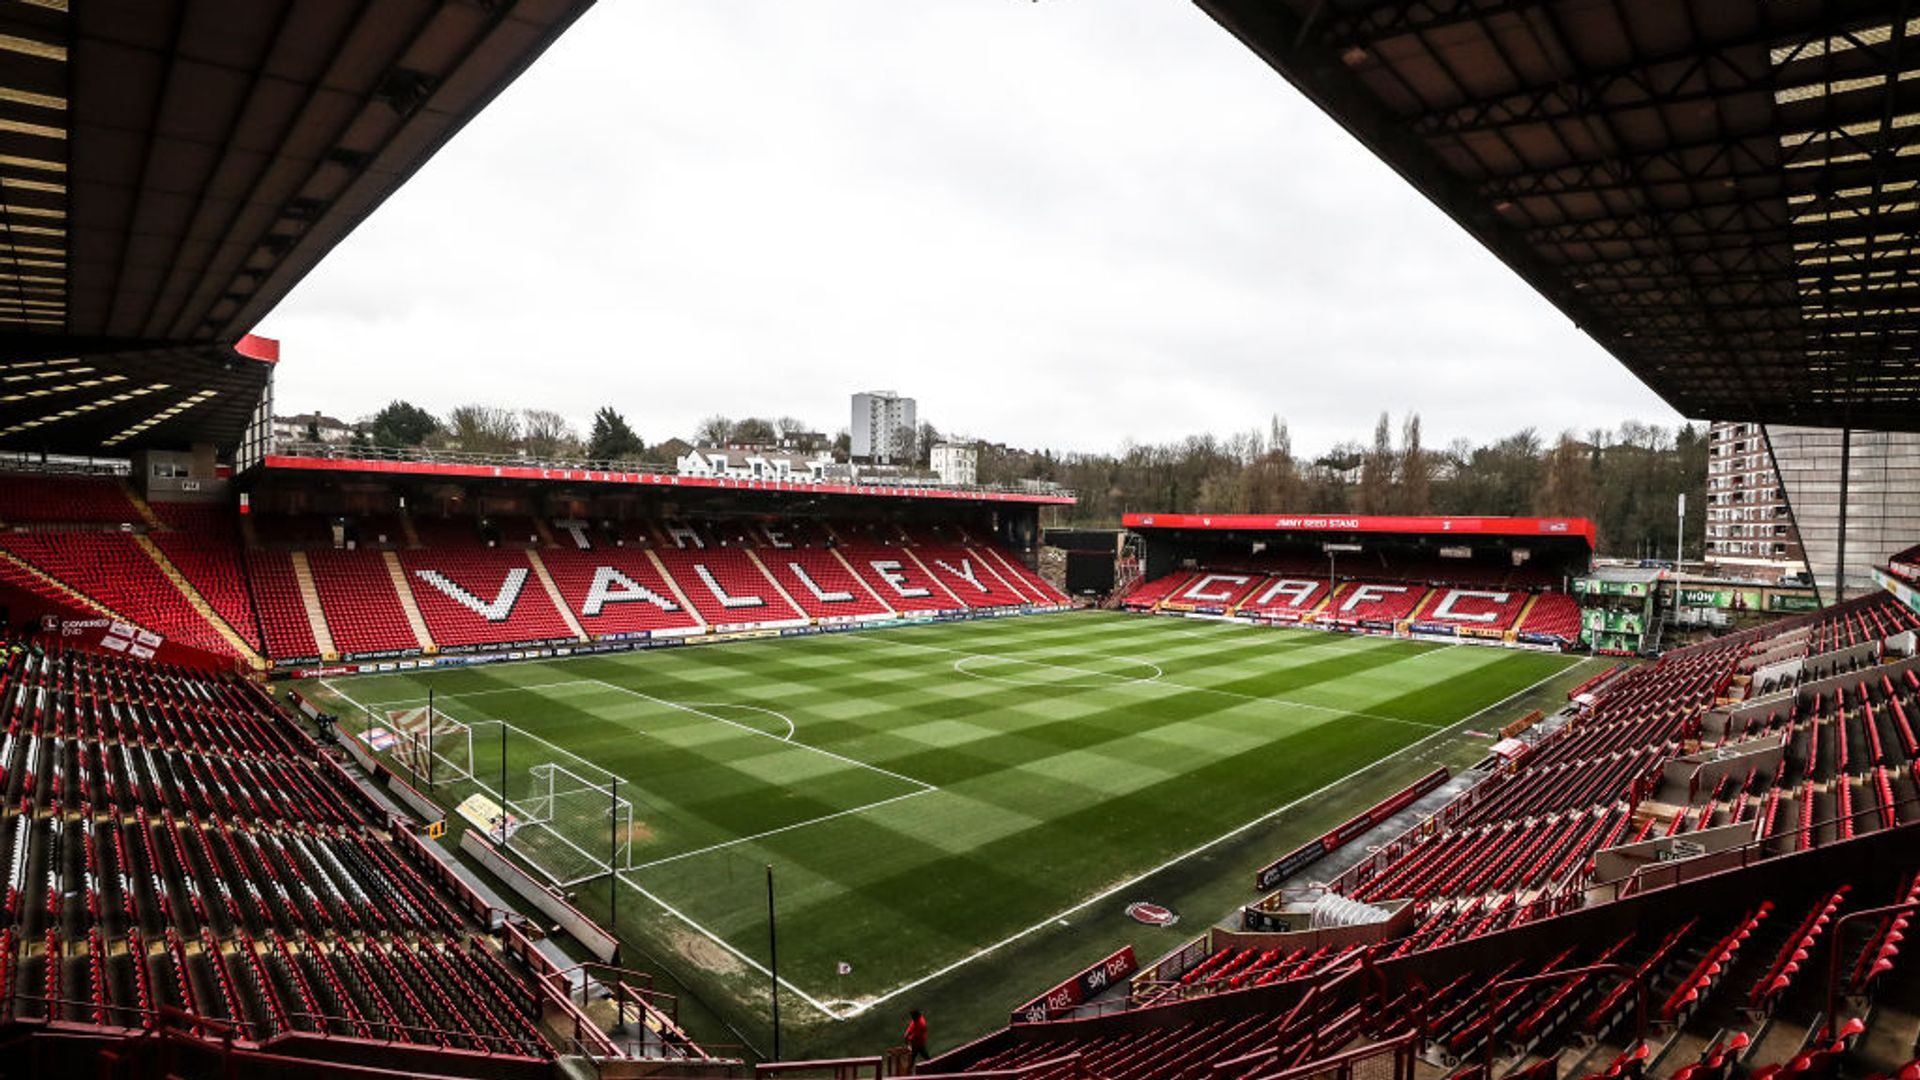 Charlton fans occupy boardroom in ownership protest